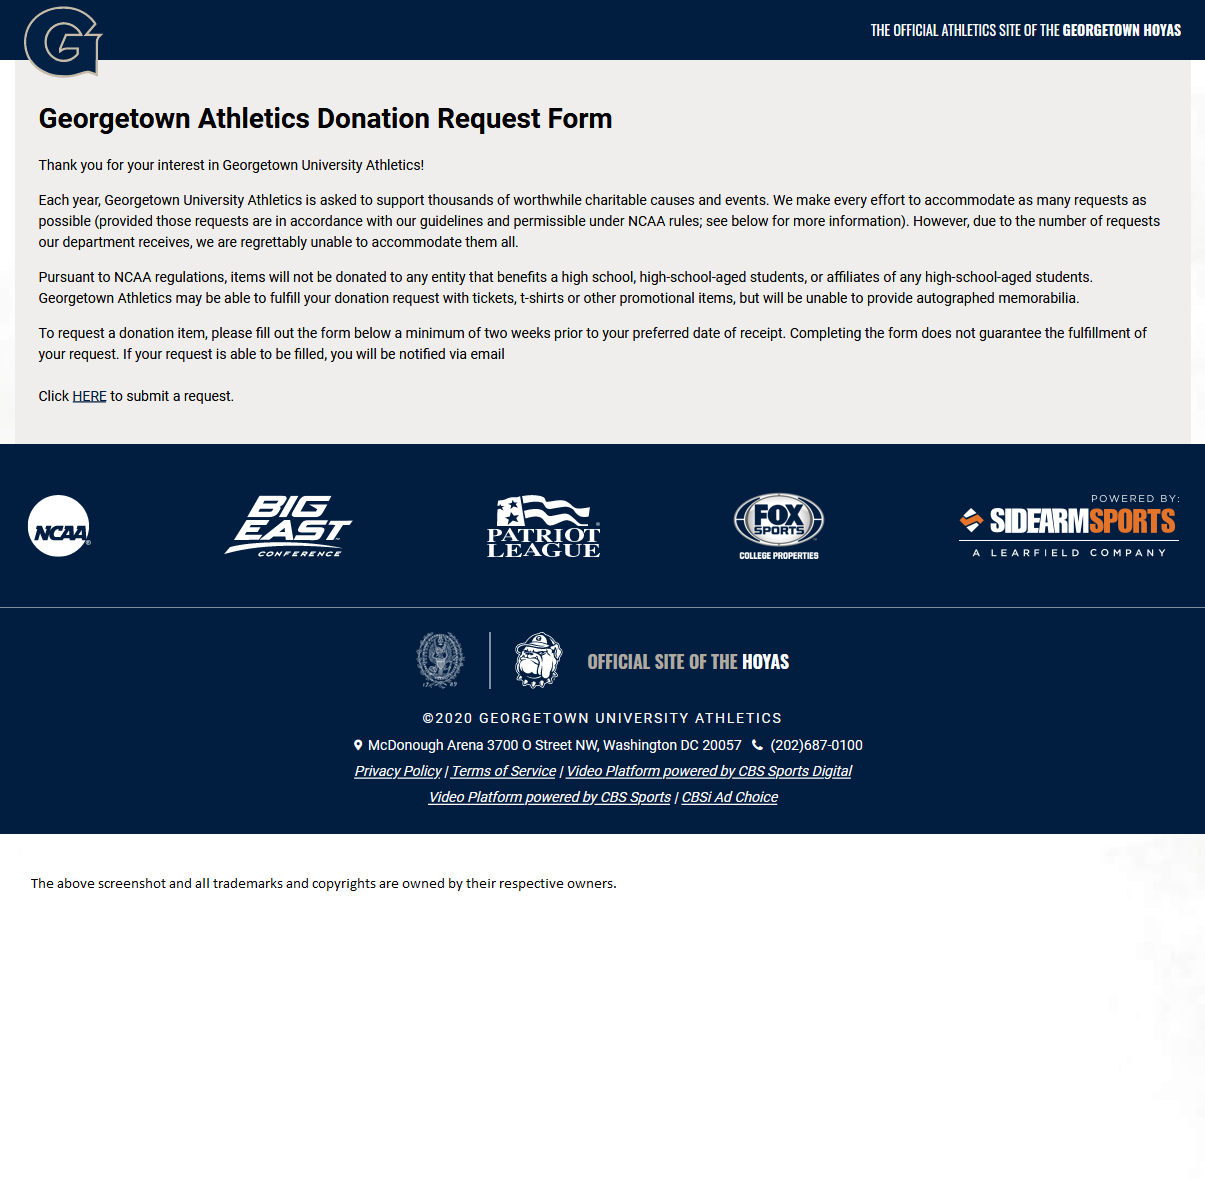 Georgetown Athletics - https://guhoyas.com/index.aspx